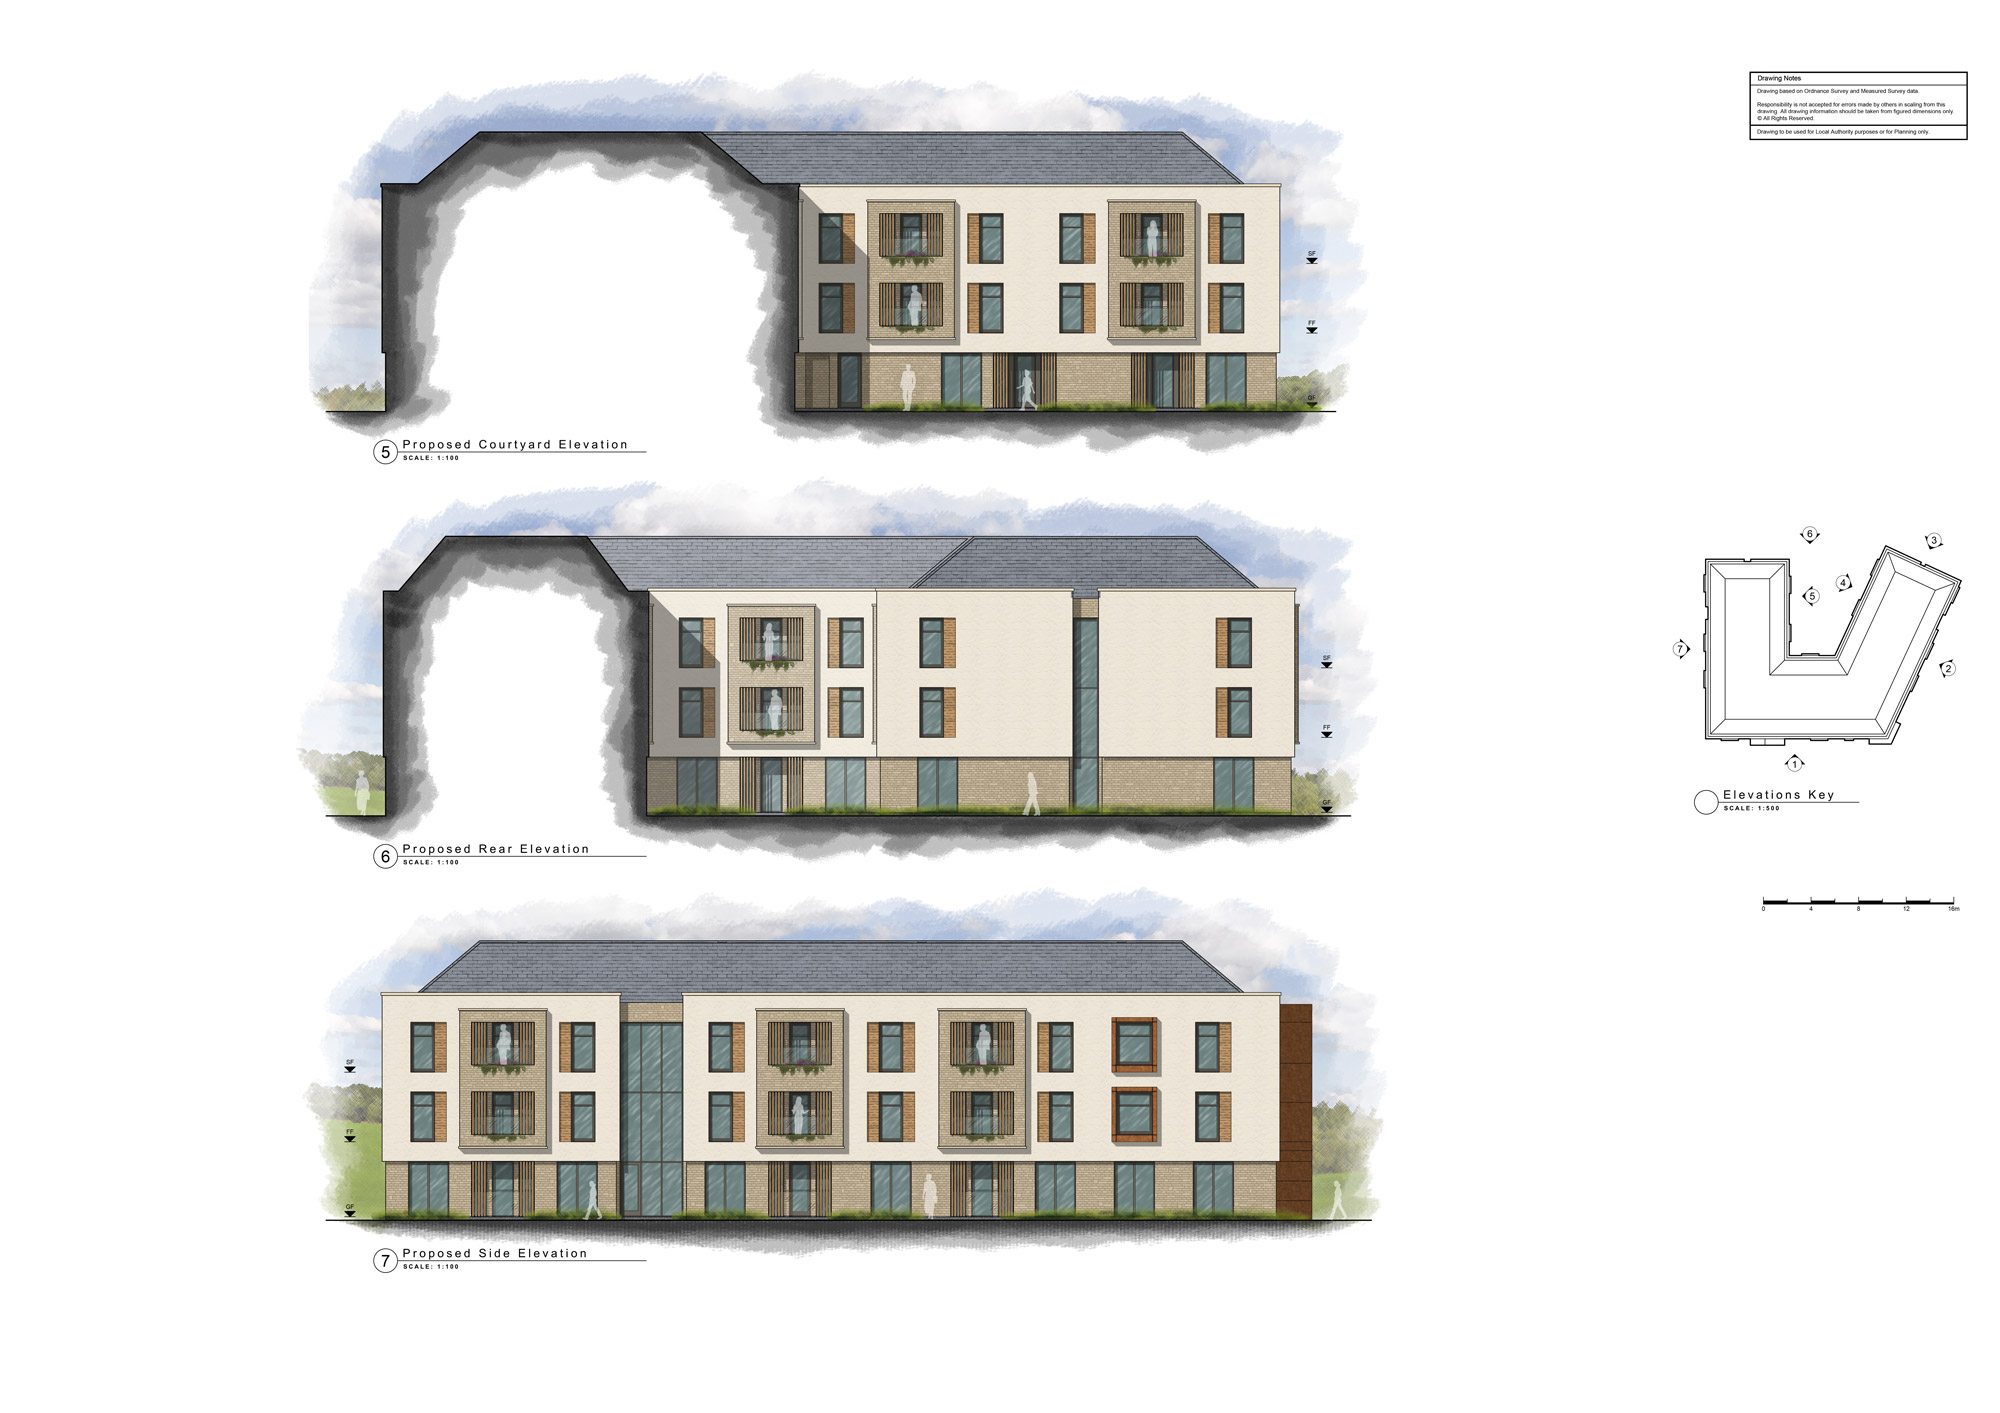 Bicester-Proposed-Elevations-2